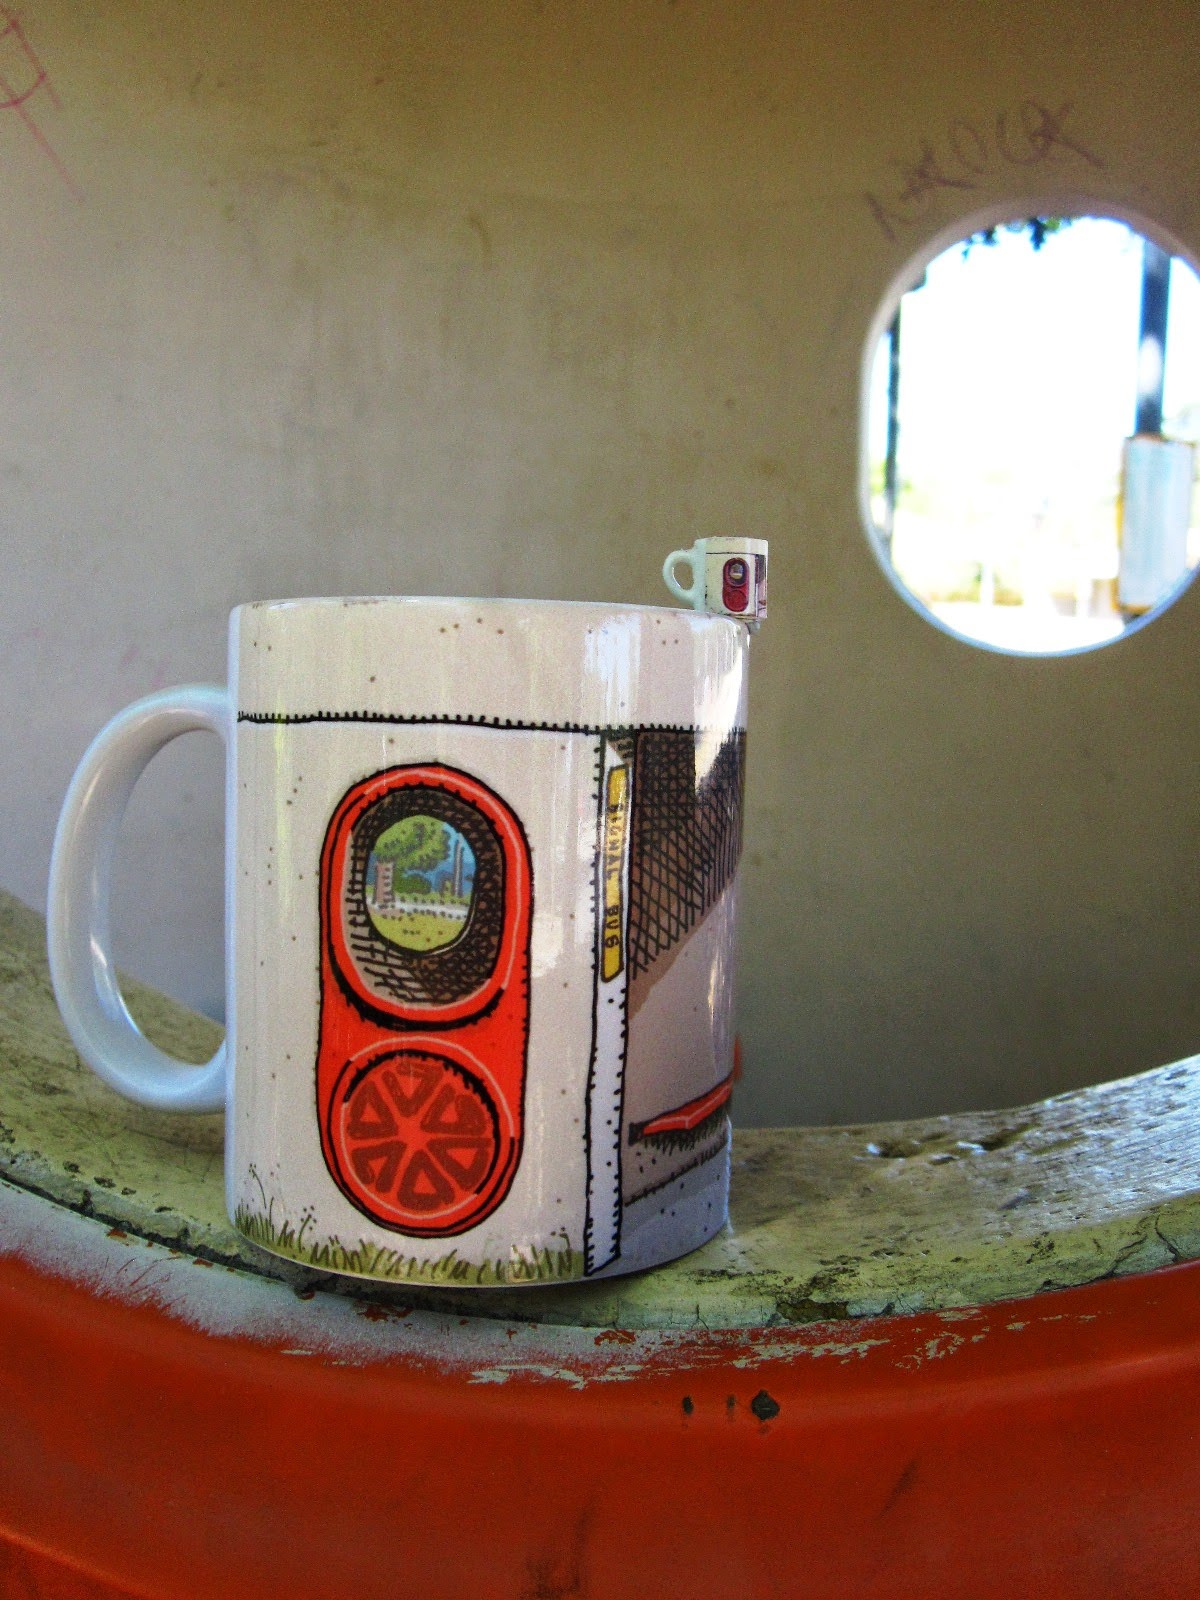 Dolls' house miniature mug with a Canberra bus shelter print, balanced on the edge of a full-sized Canberra bus shelter mug, sitting on the window ledge of a Canberra bus shelter.